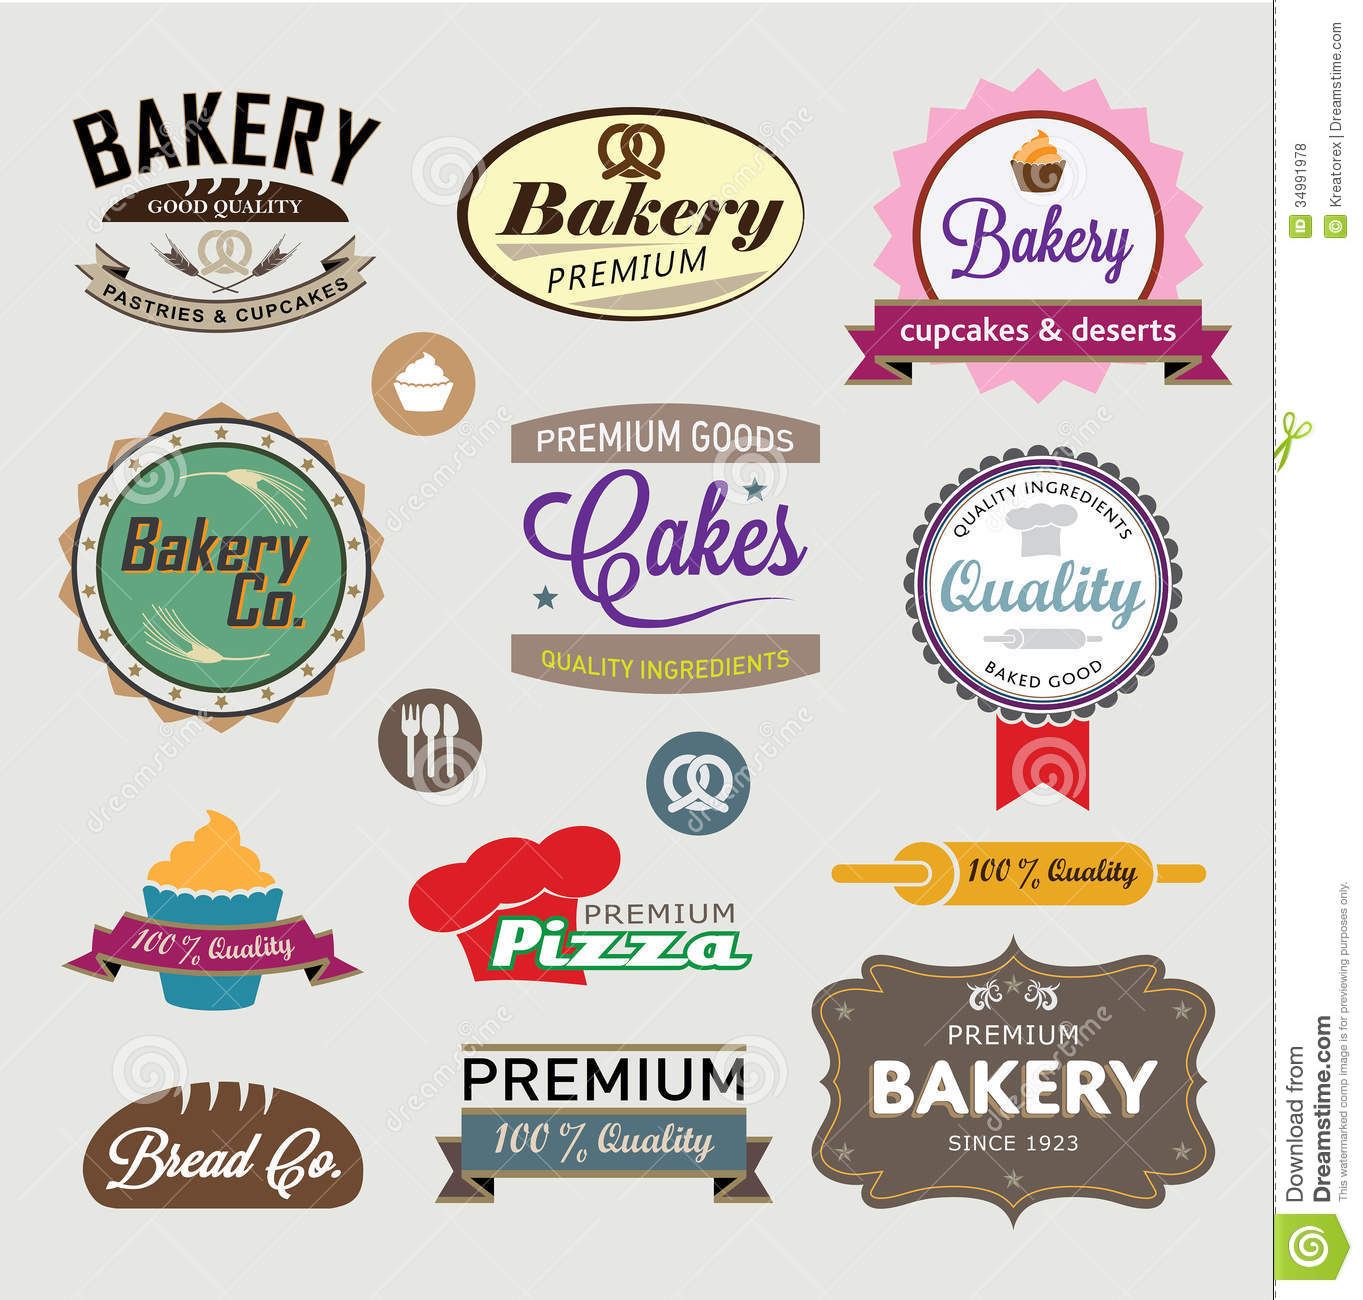 Bakery Signs Royalty Free Stock Photos   Image  34991978